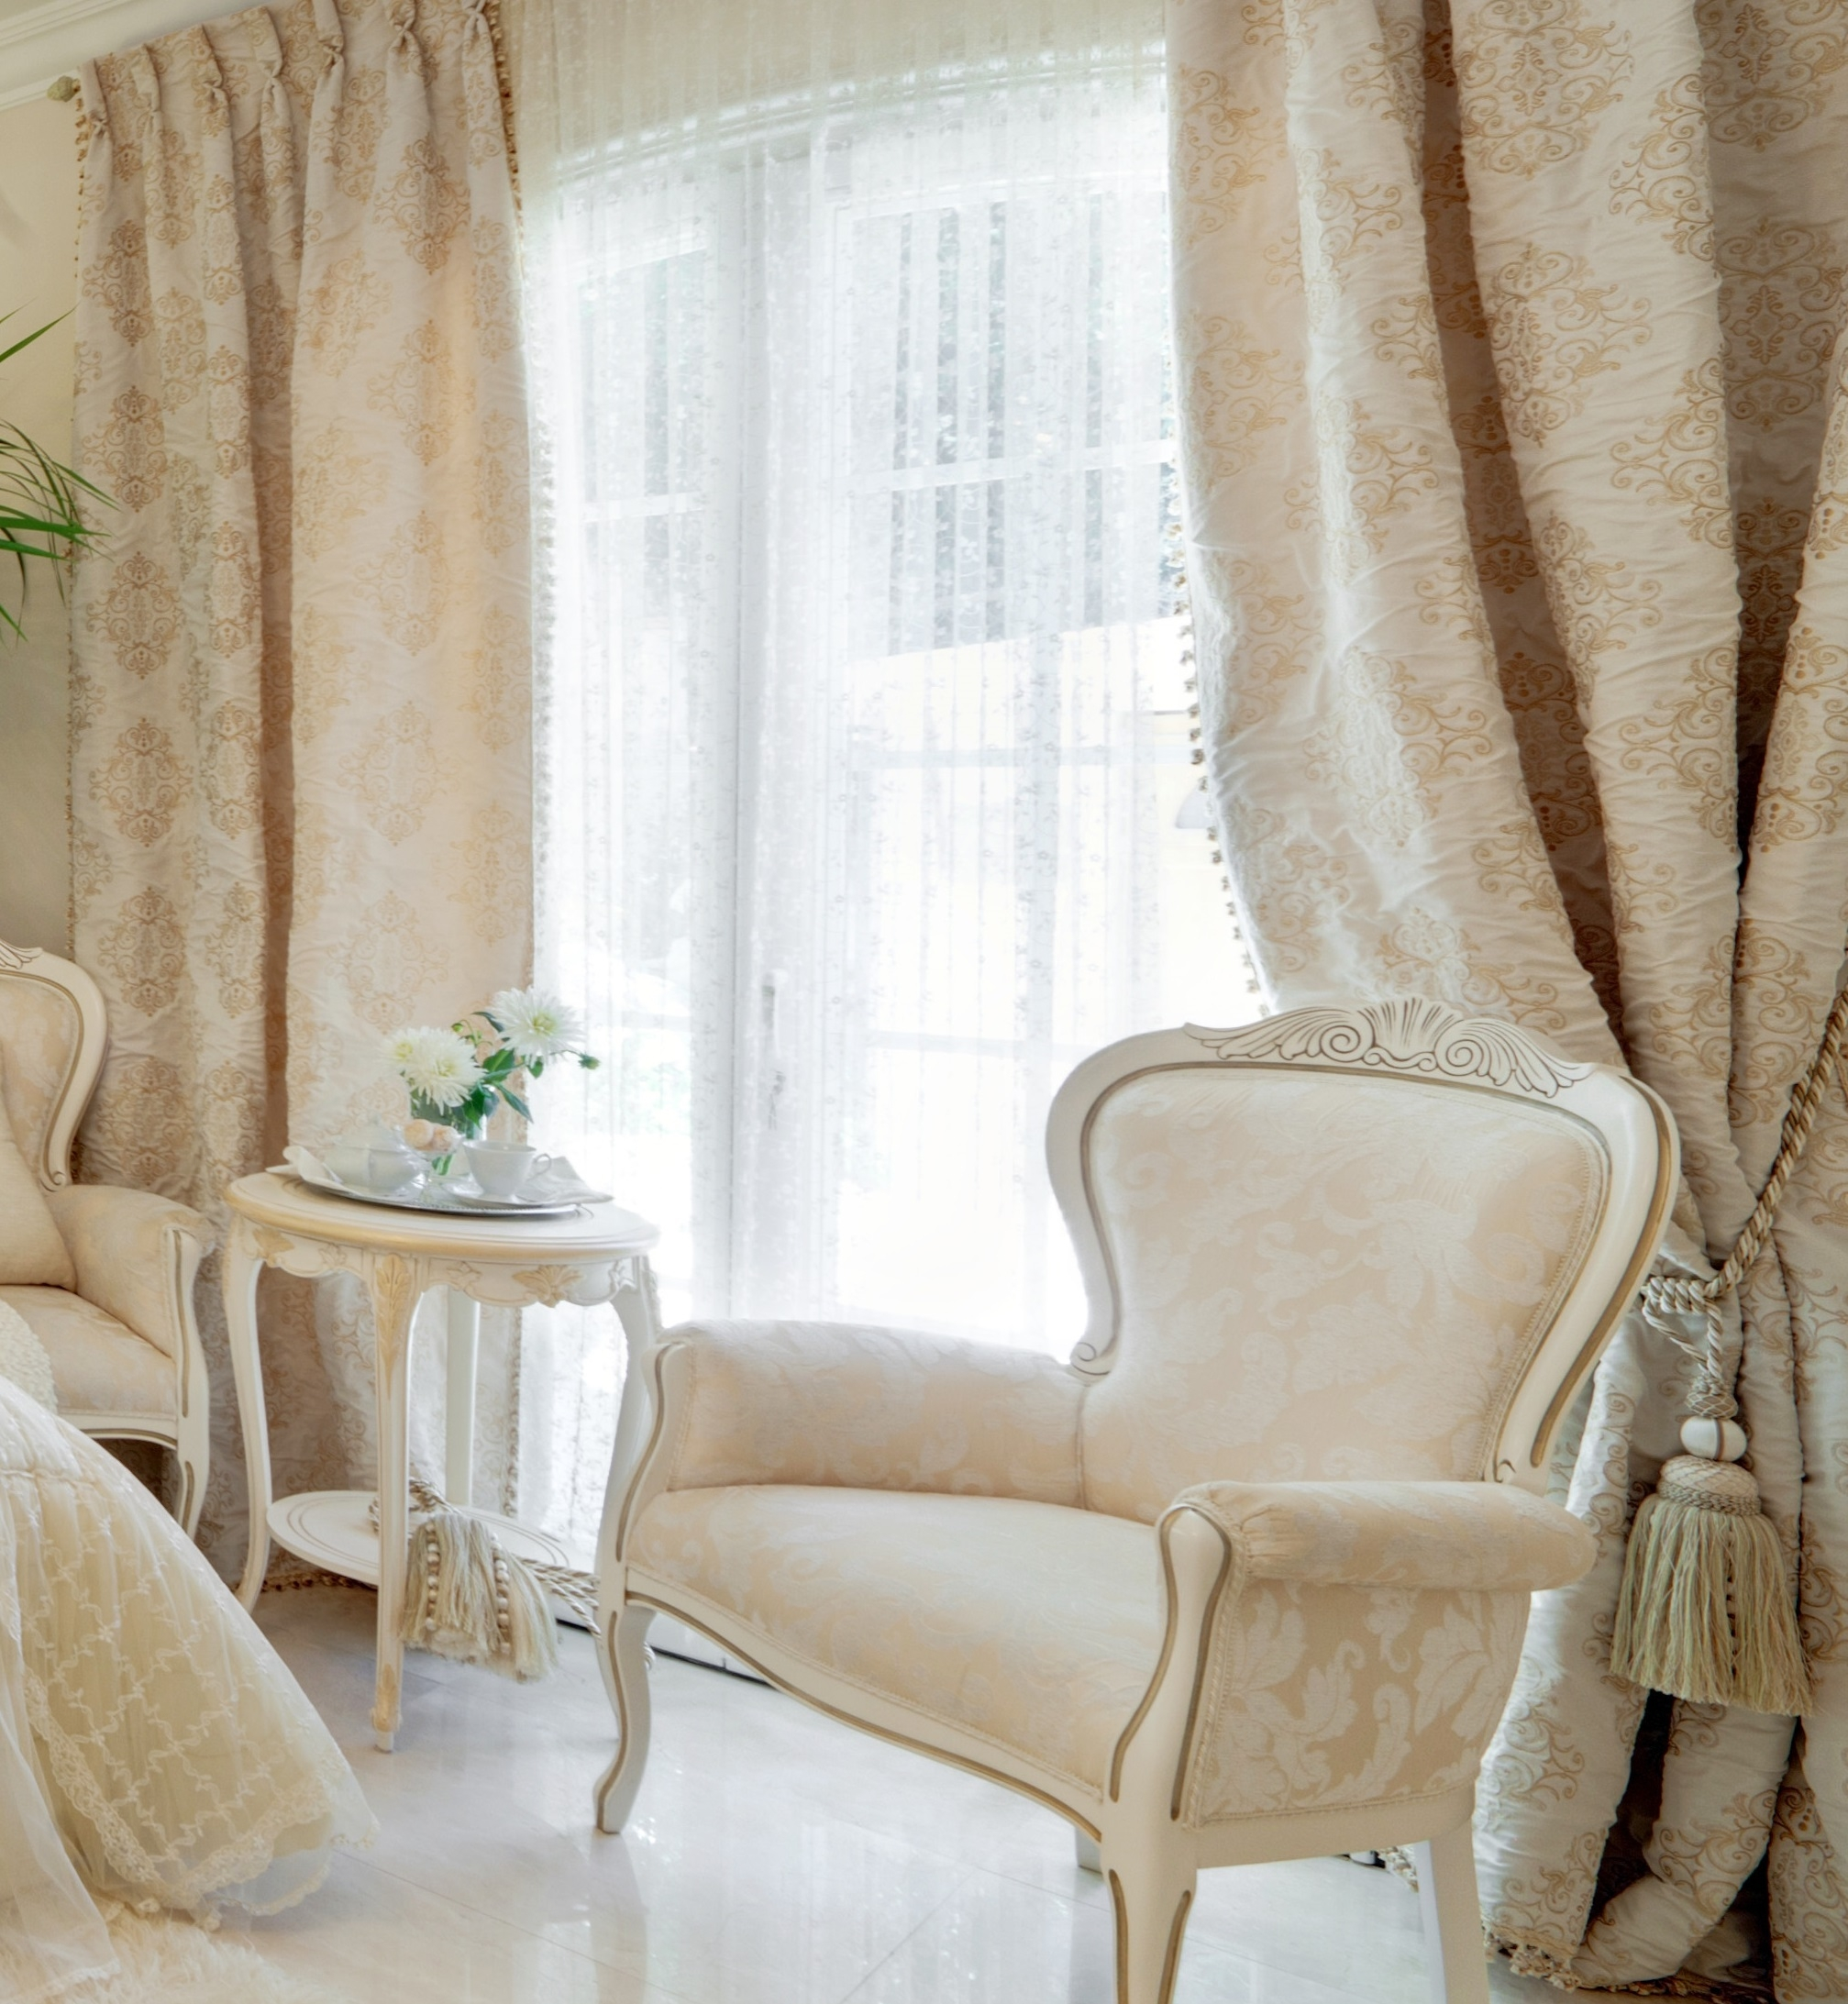 Luxury Interior Design Lidia Bersani Home Fashion Regarding Luxury Curtains (View 2 of 15)